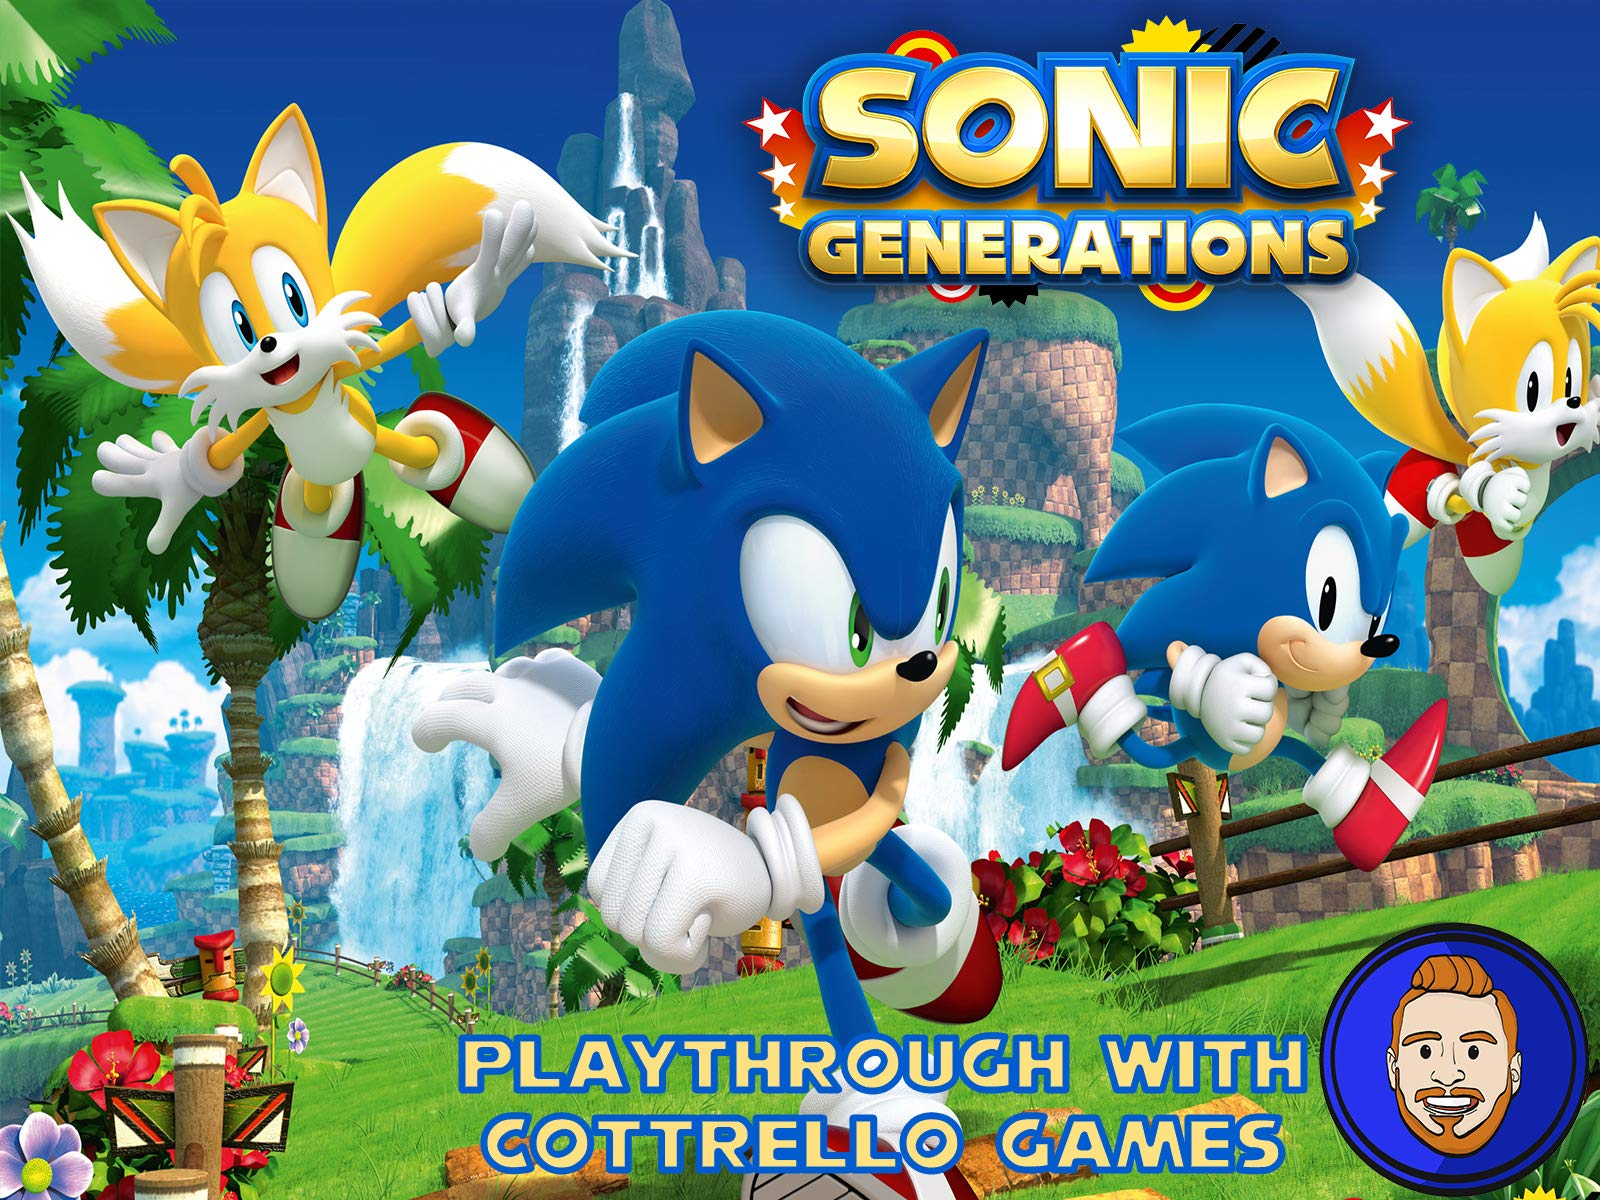 Sonic Generations Playthrough with Cottrello Games